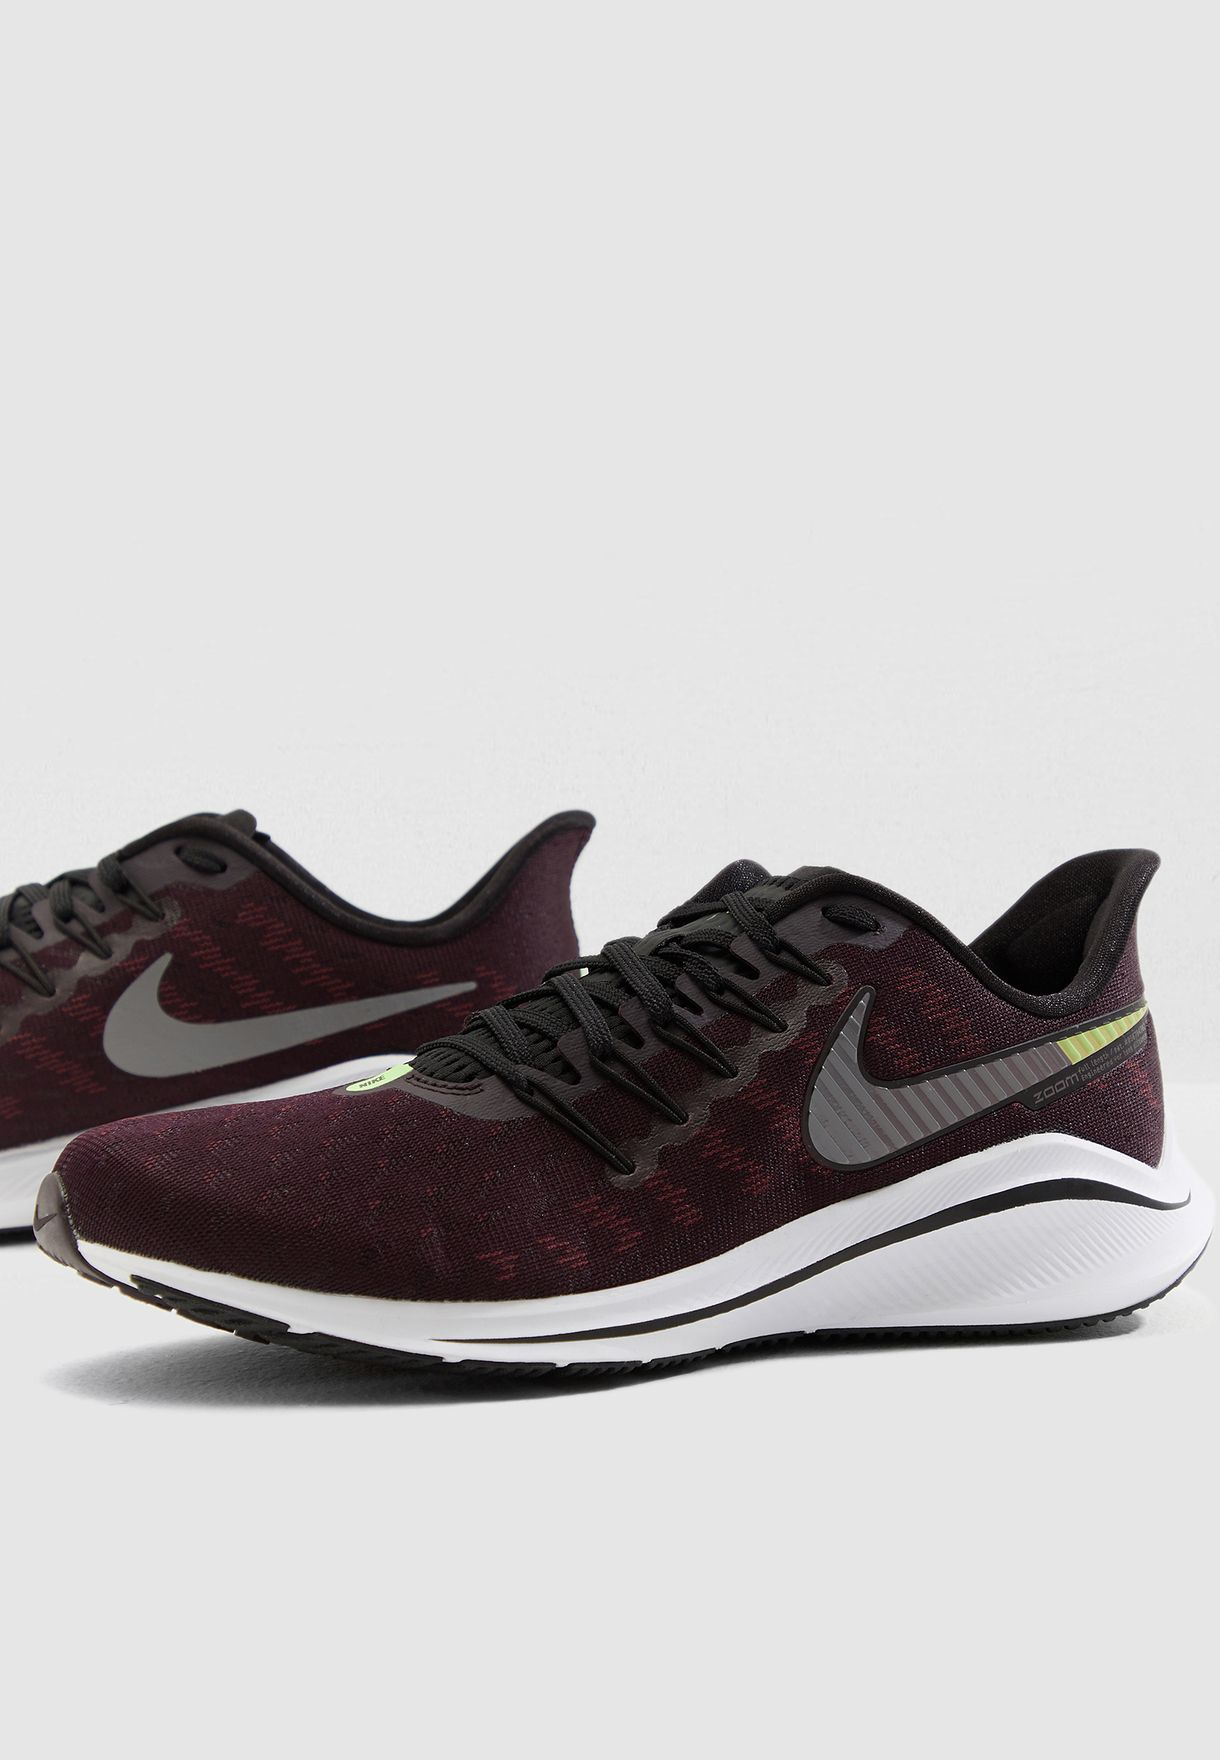 e76e2480210 Shop Nike purple Air Zoom Vomero 14 AH7857-600 for Men in UAE ...